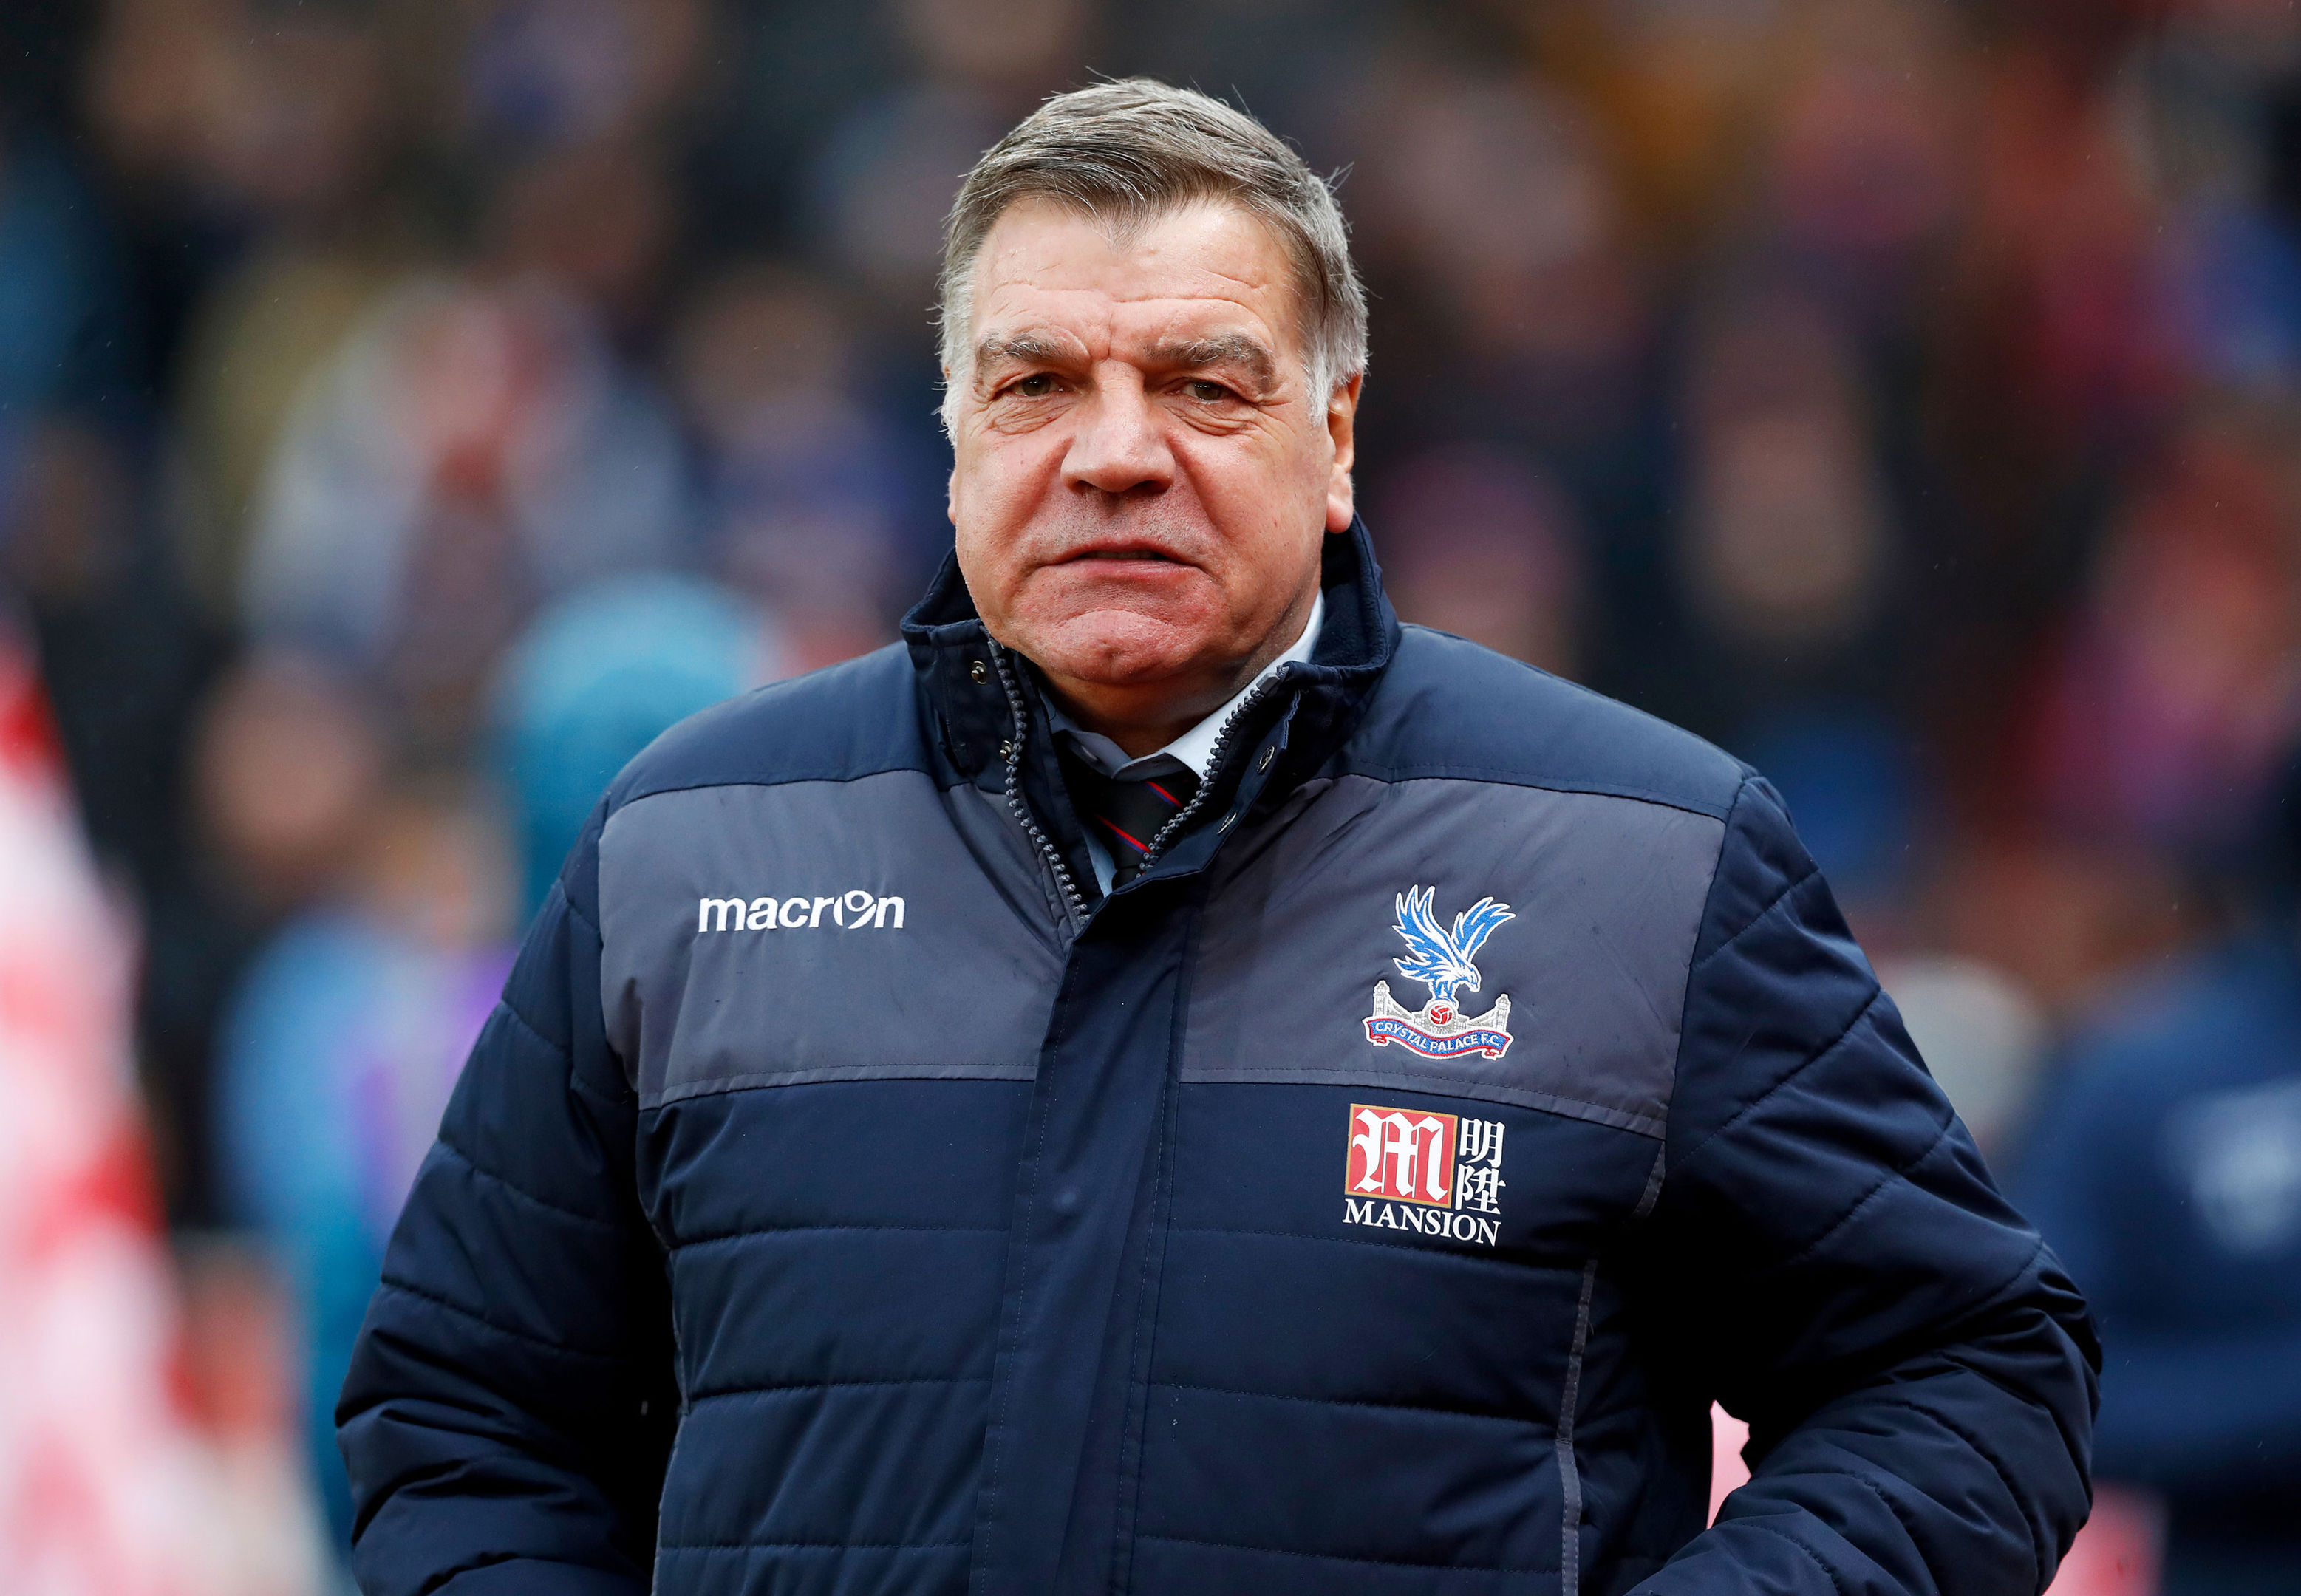 Everton have finally completed their search for a new manager with the appointment of Sam Allardyce, according to reports (Martin Rickett/PA Wire)